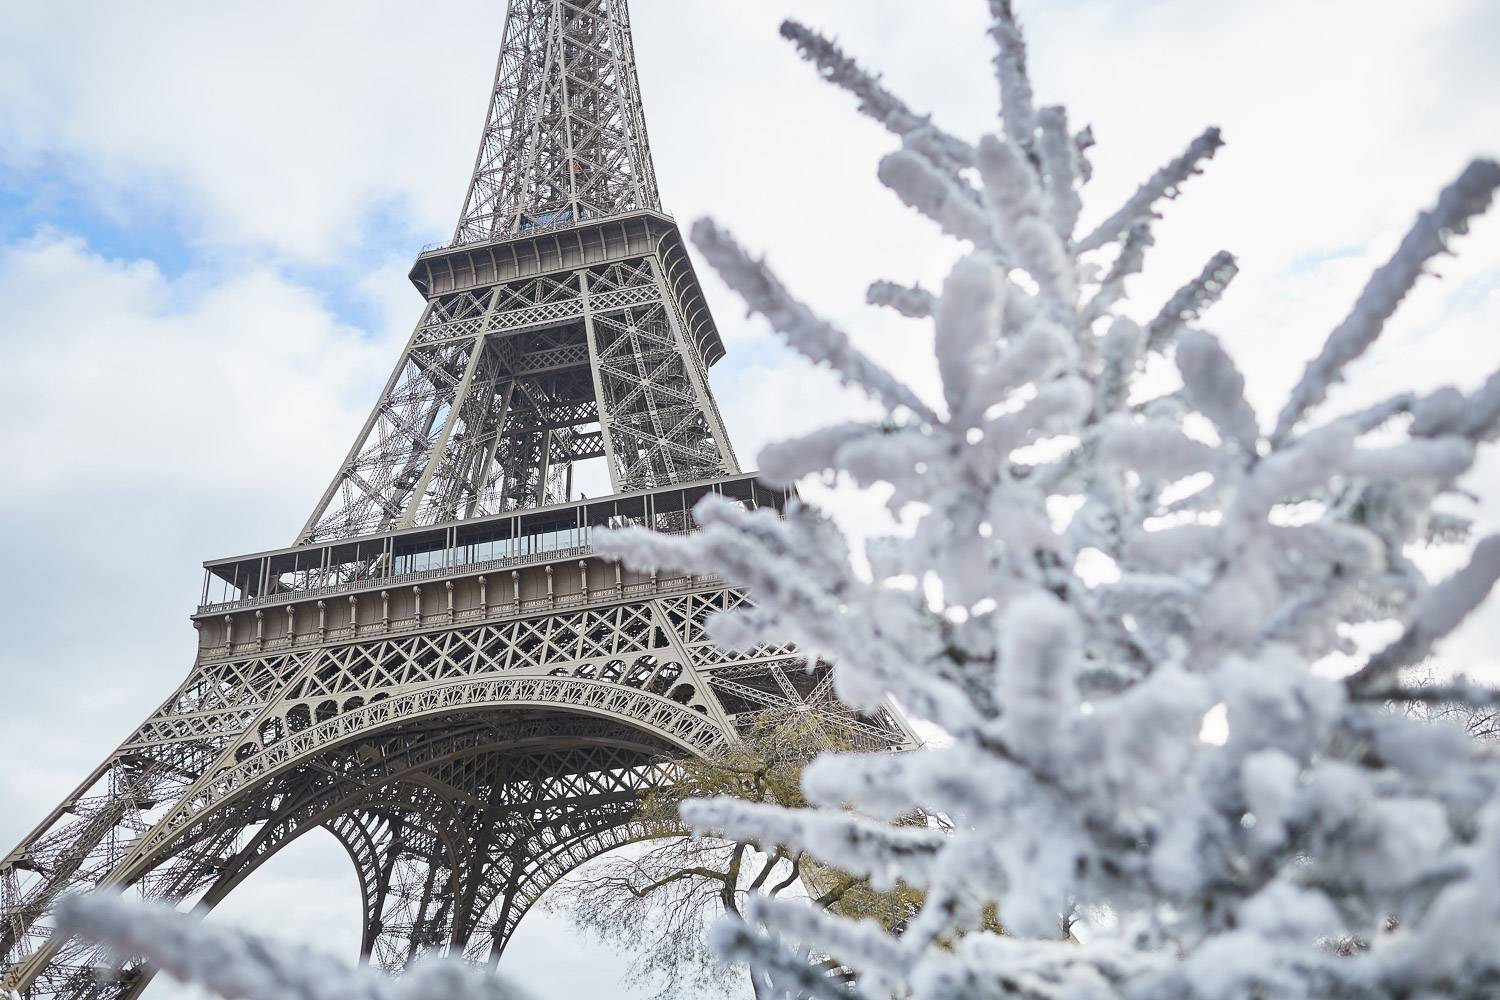 Image of the Eiffel Tower juxtaposed with a tree branch covered with snow in the foreground